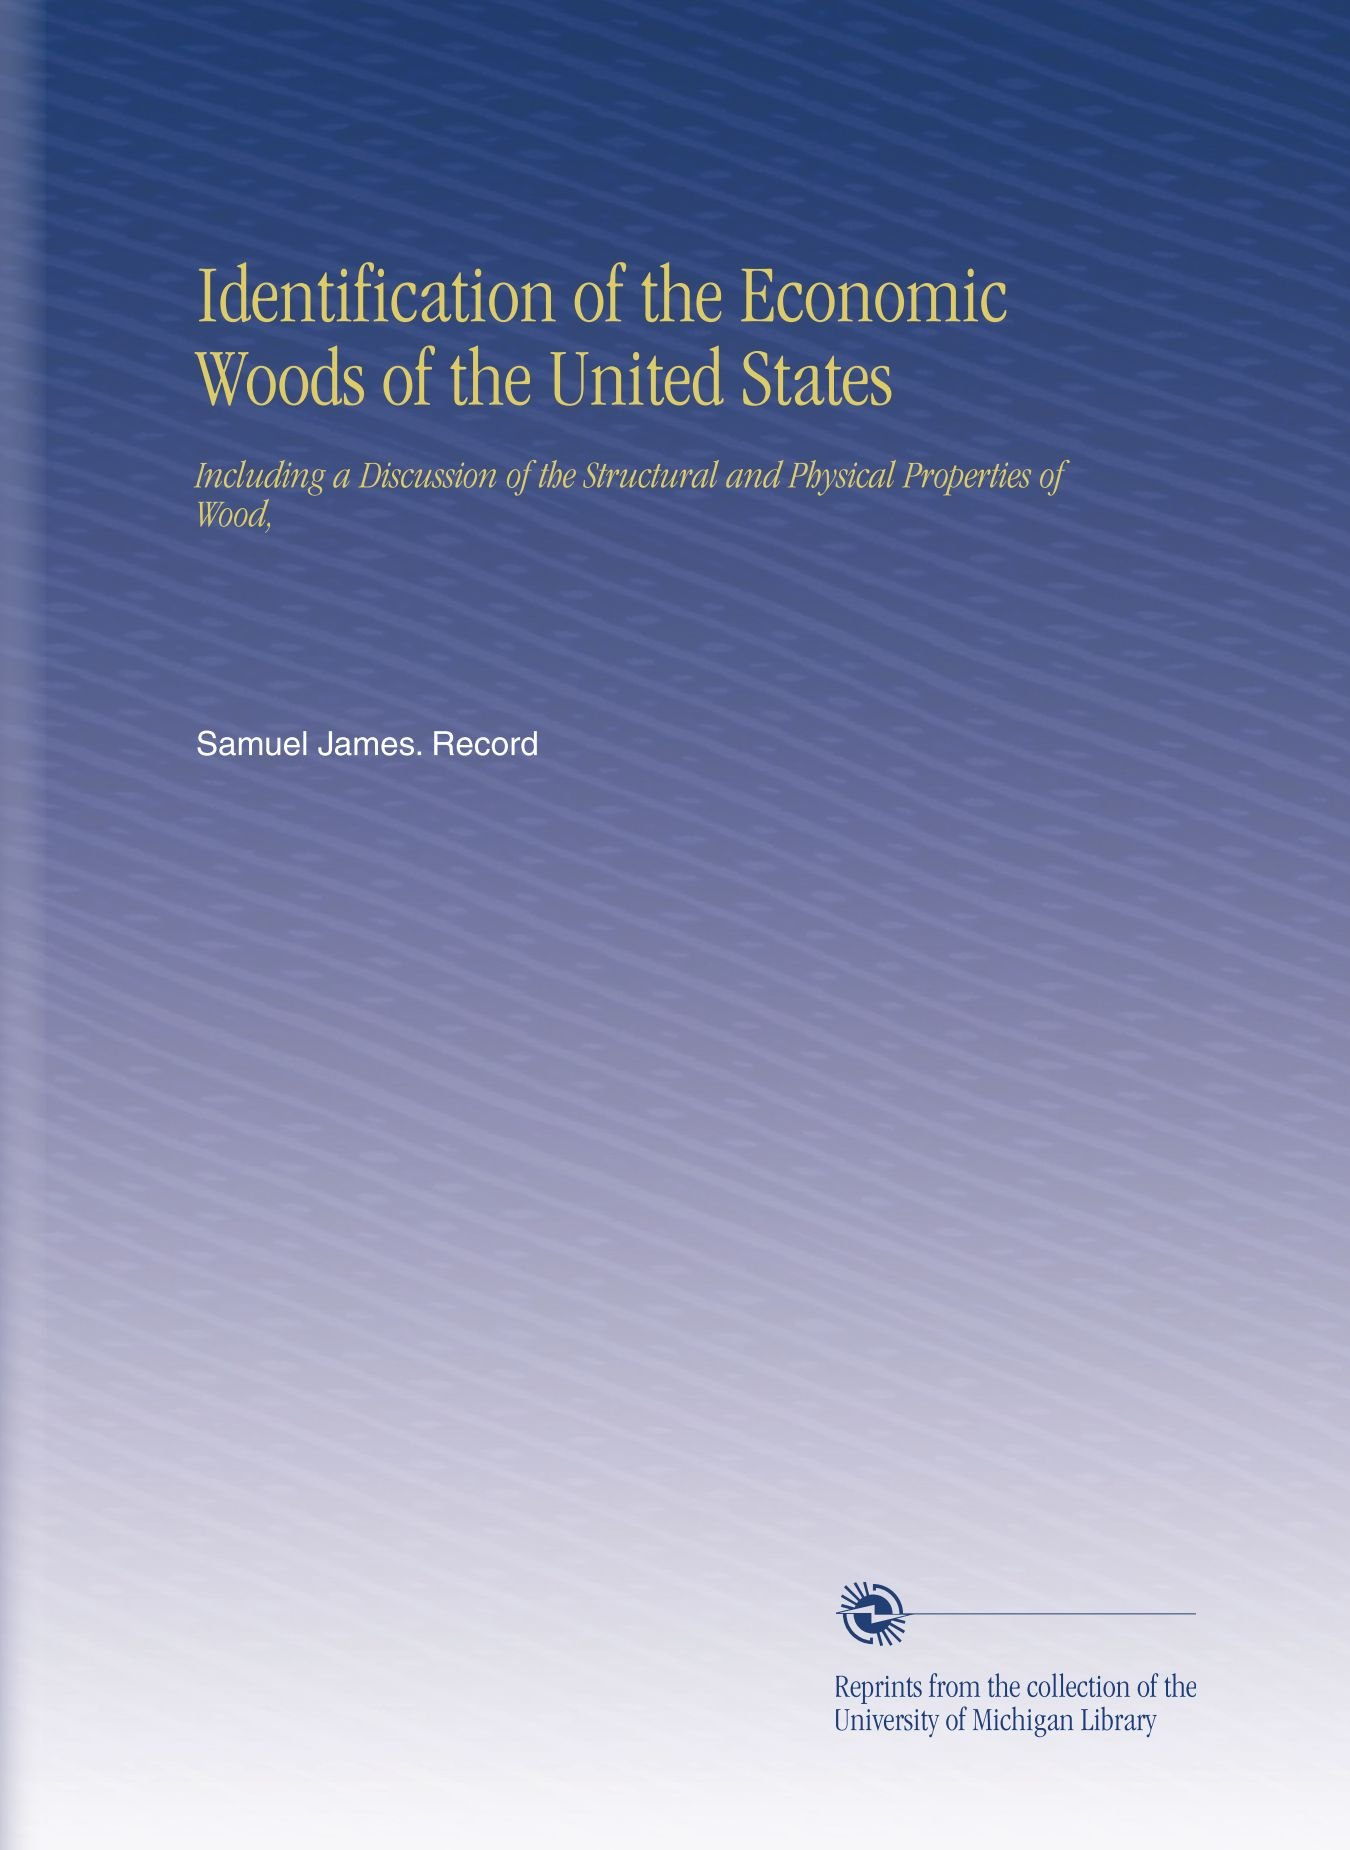 Download Identification of the Economic Woods of the United States: Including a Discussion of the Structural and Physical Properties of Wood, PDF